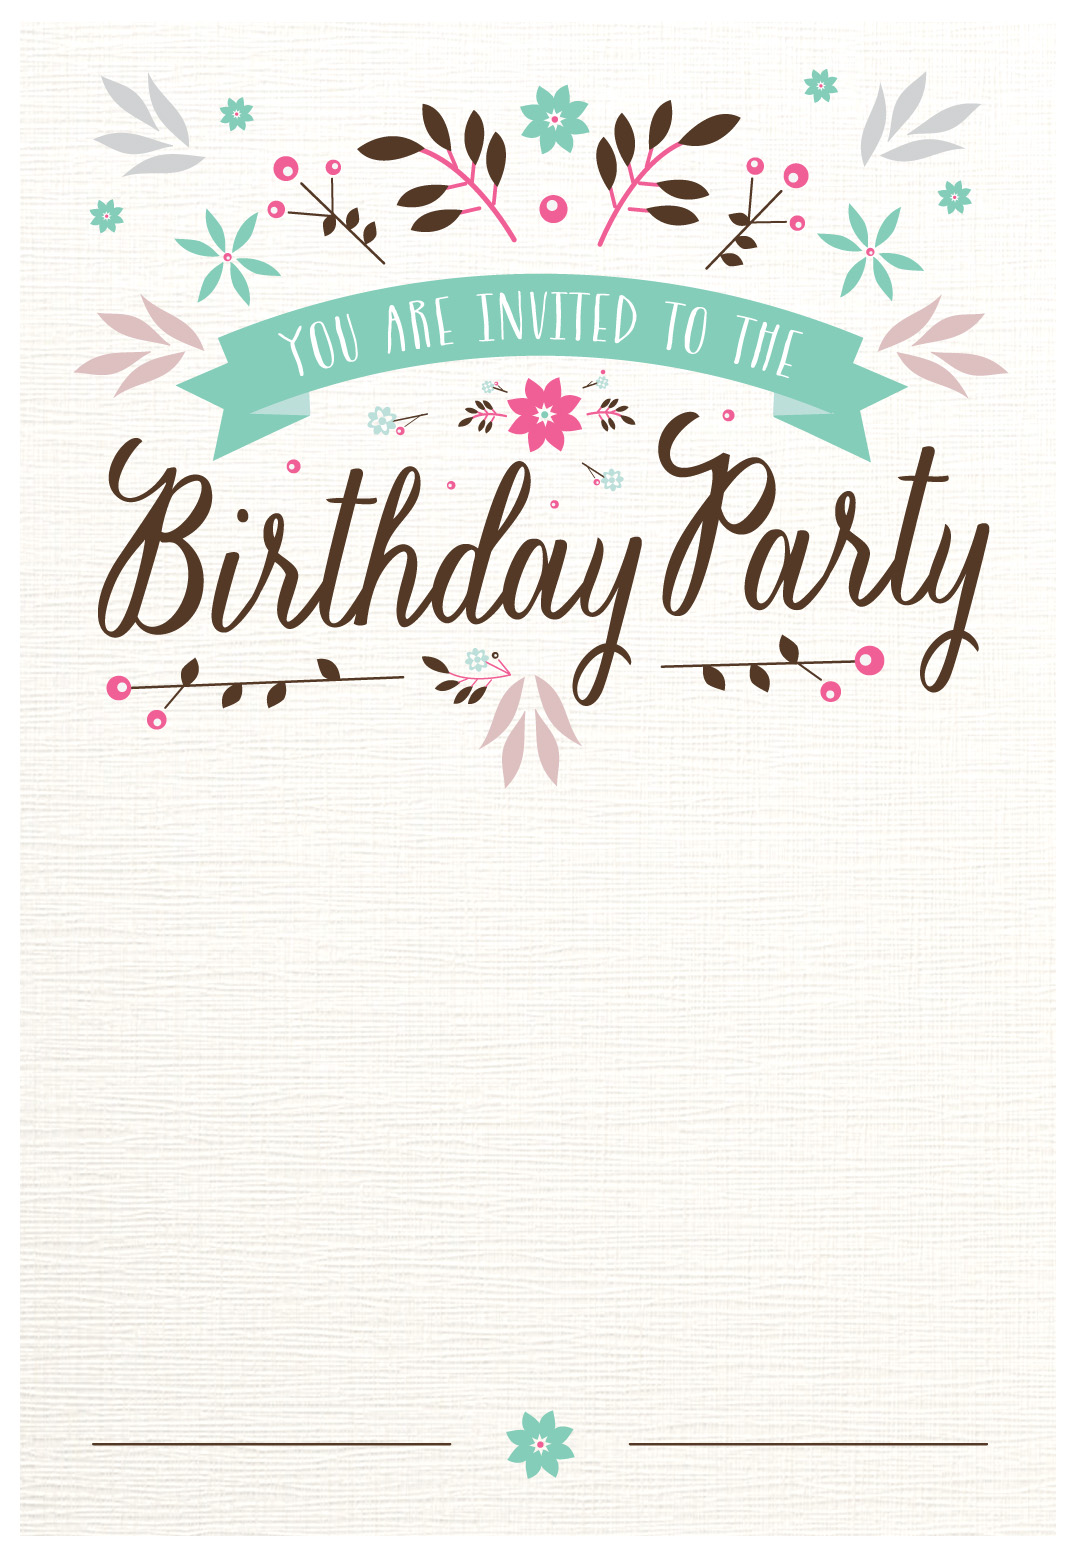 border designs for birthday invitations ; 24ec7eeae4067c318f3f0bc0a00248df